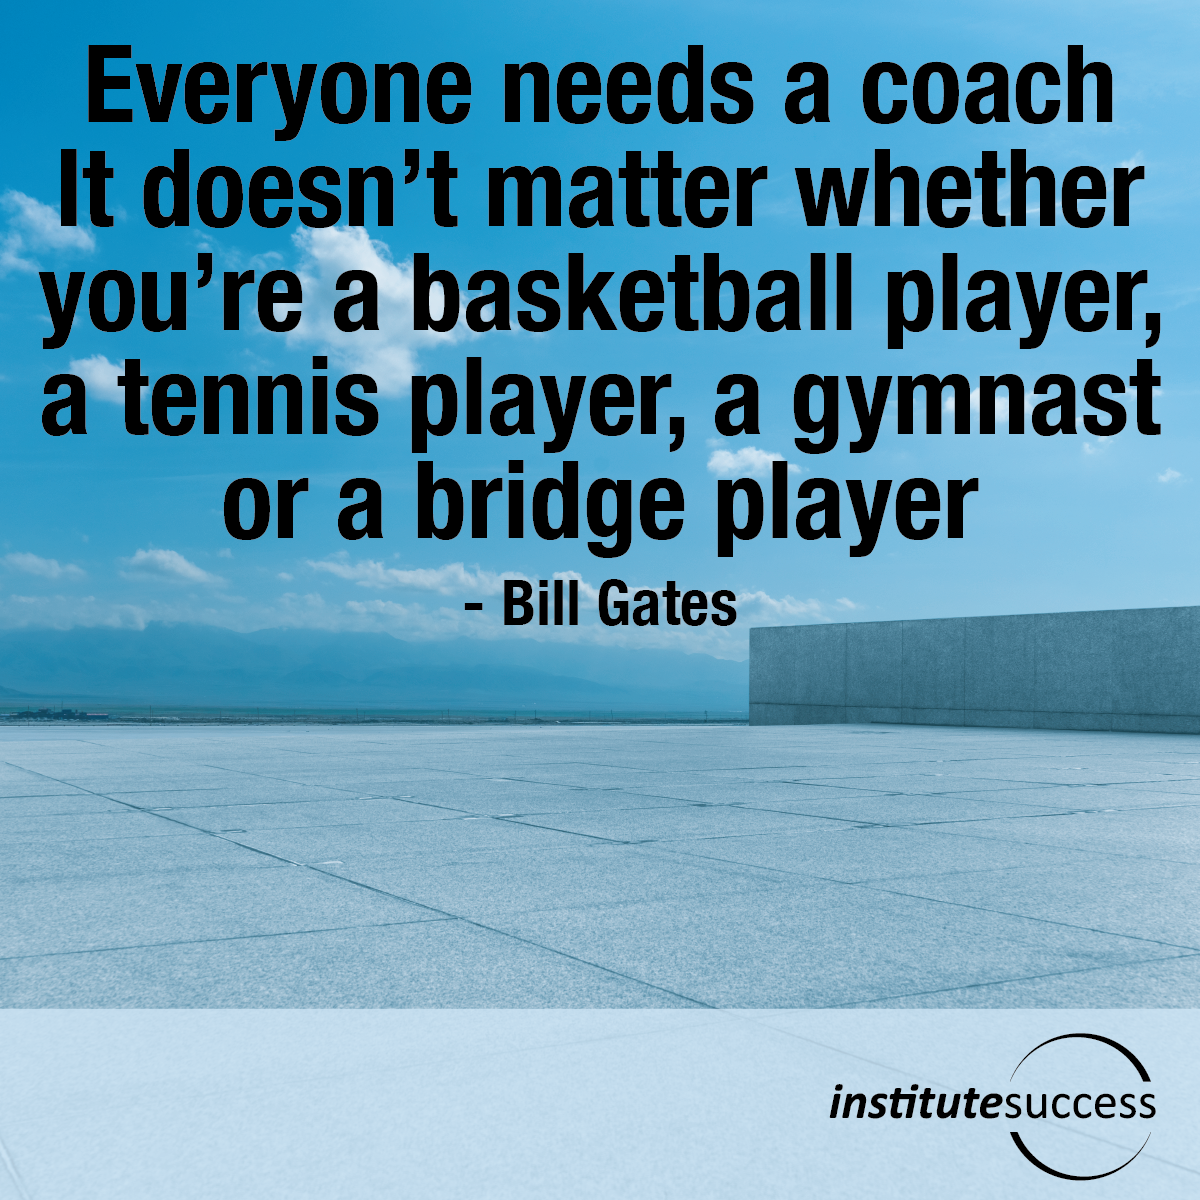 Everyone needs a coach. It doesn't matter whether you're a basketball player, a tennis player, a gymnast or a bridge player – Bill Gates